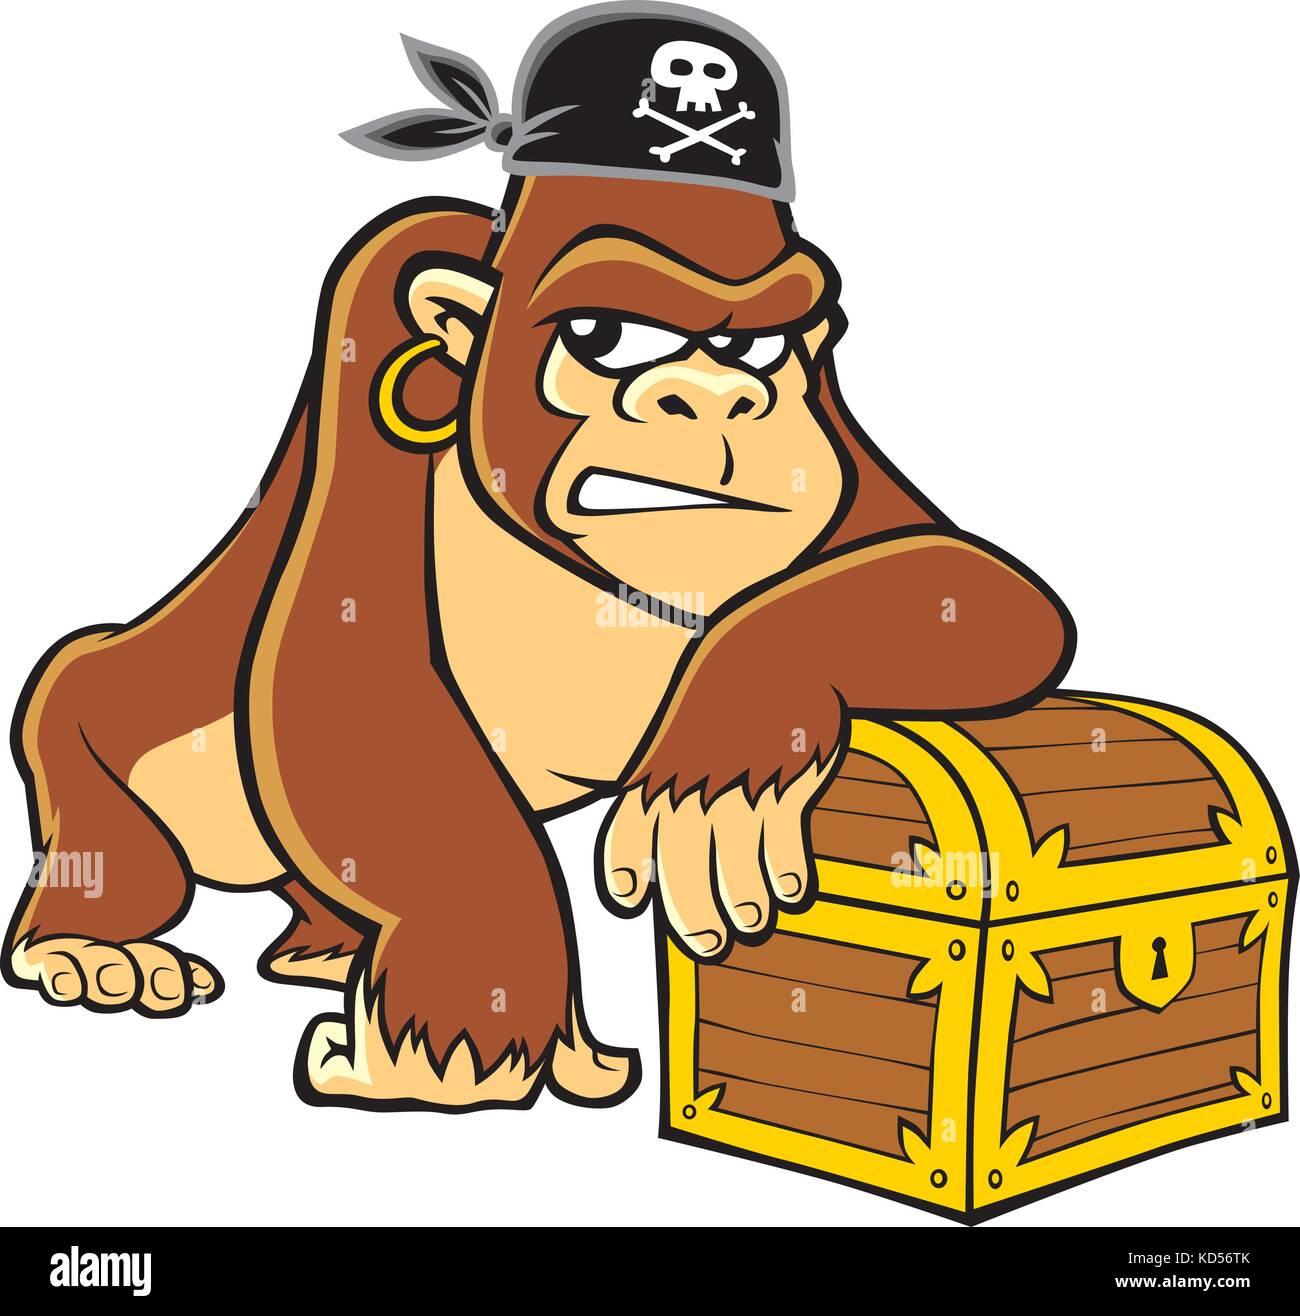 Vector cartoon of a pirate gorilla leaning on his treasure chest and wearing black bandana with skull and bones - Stock Image